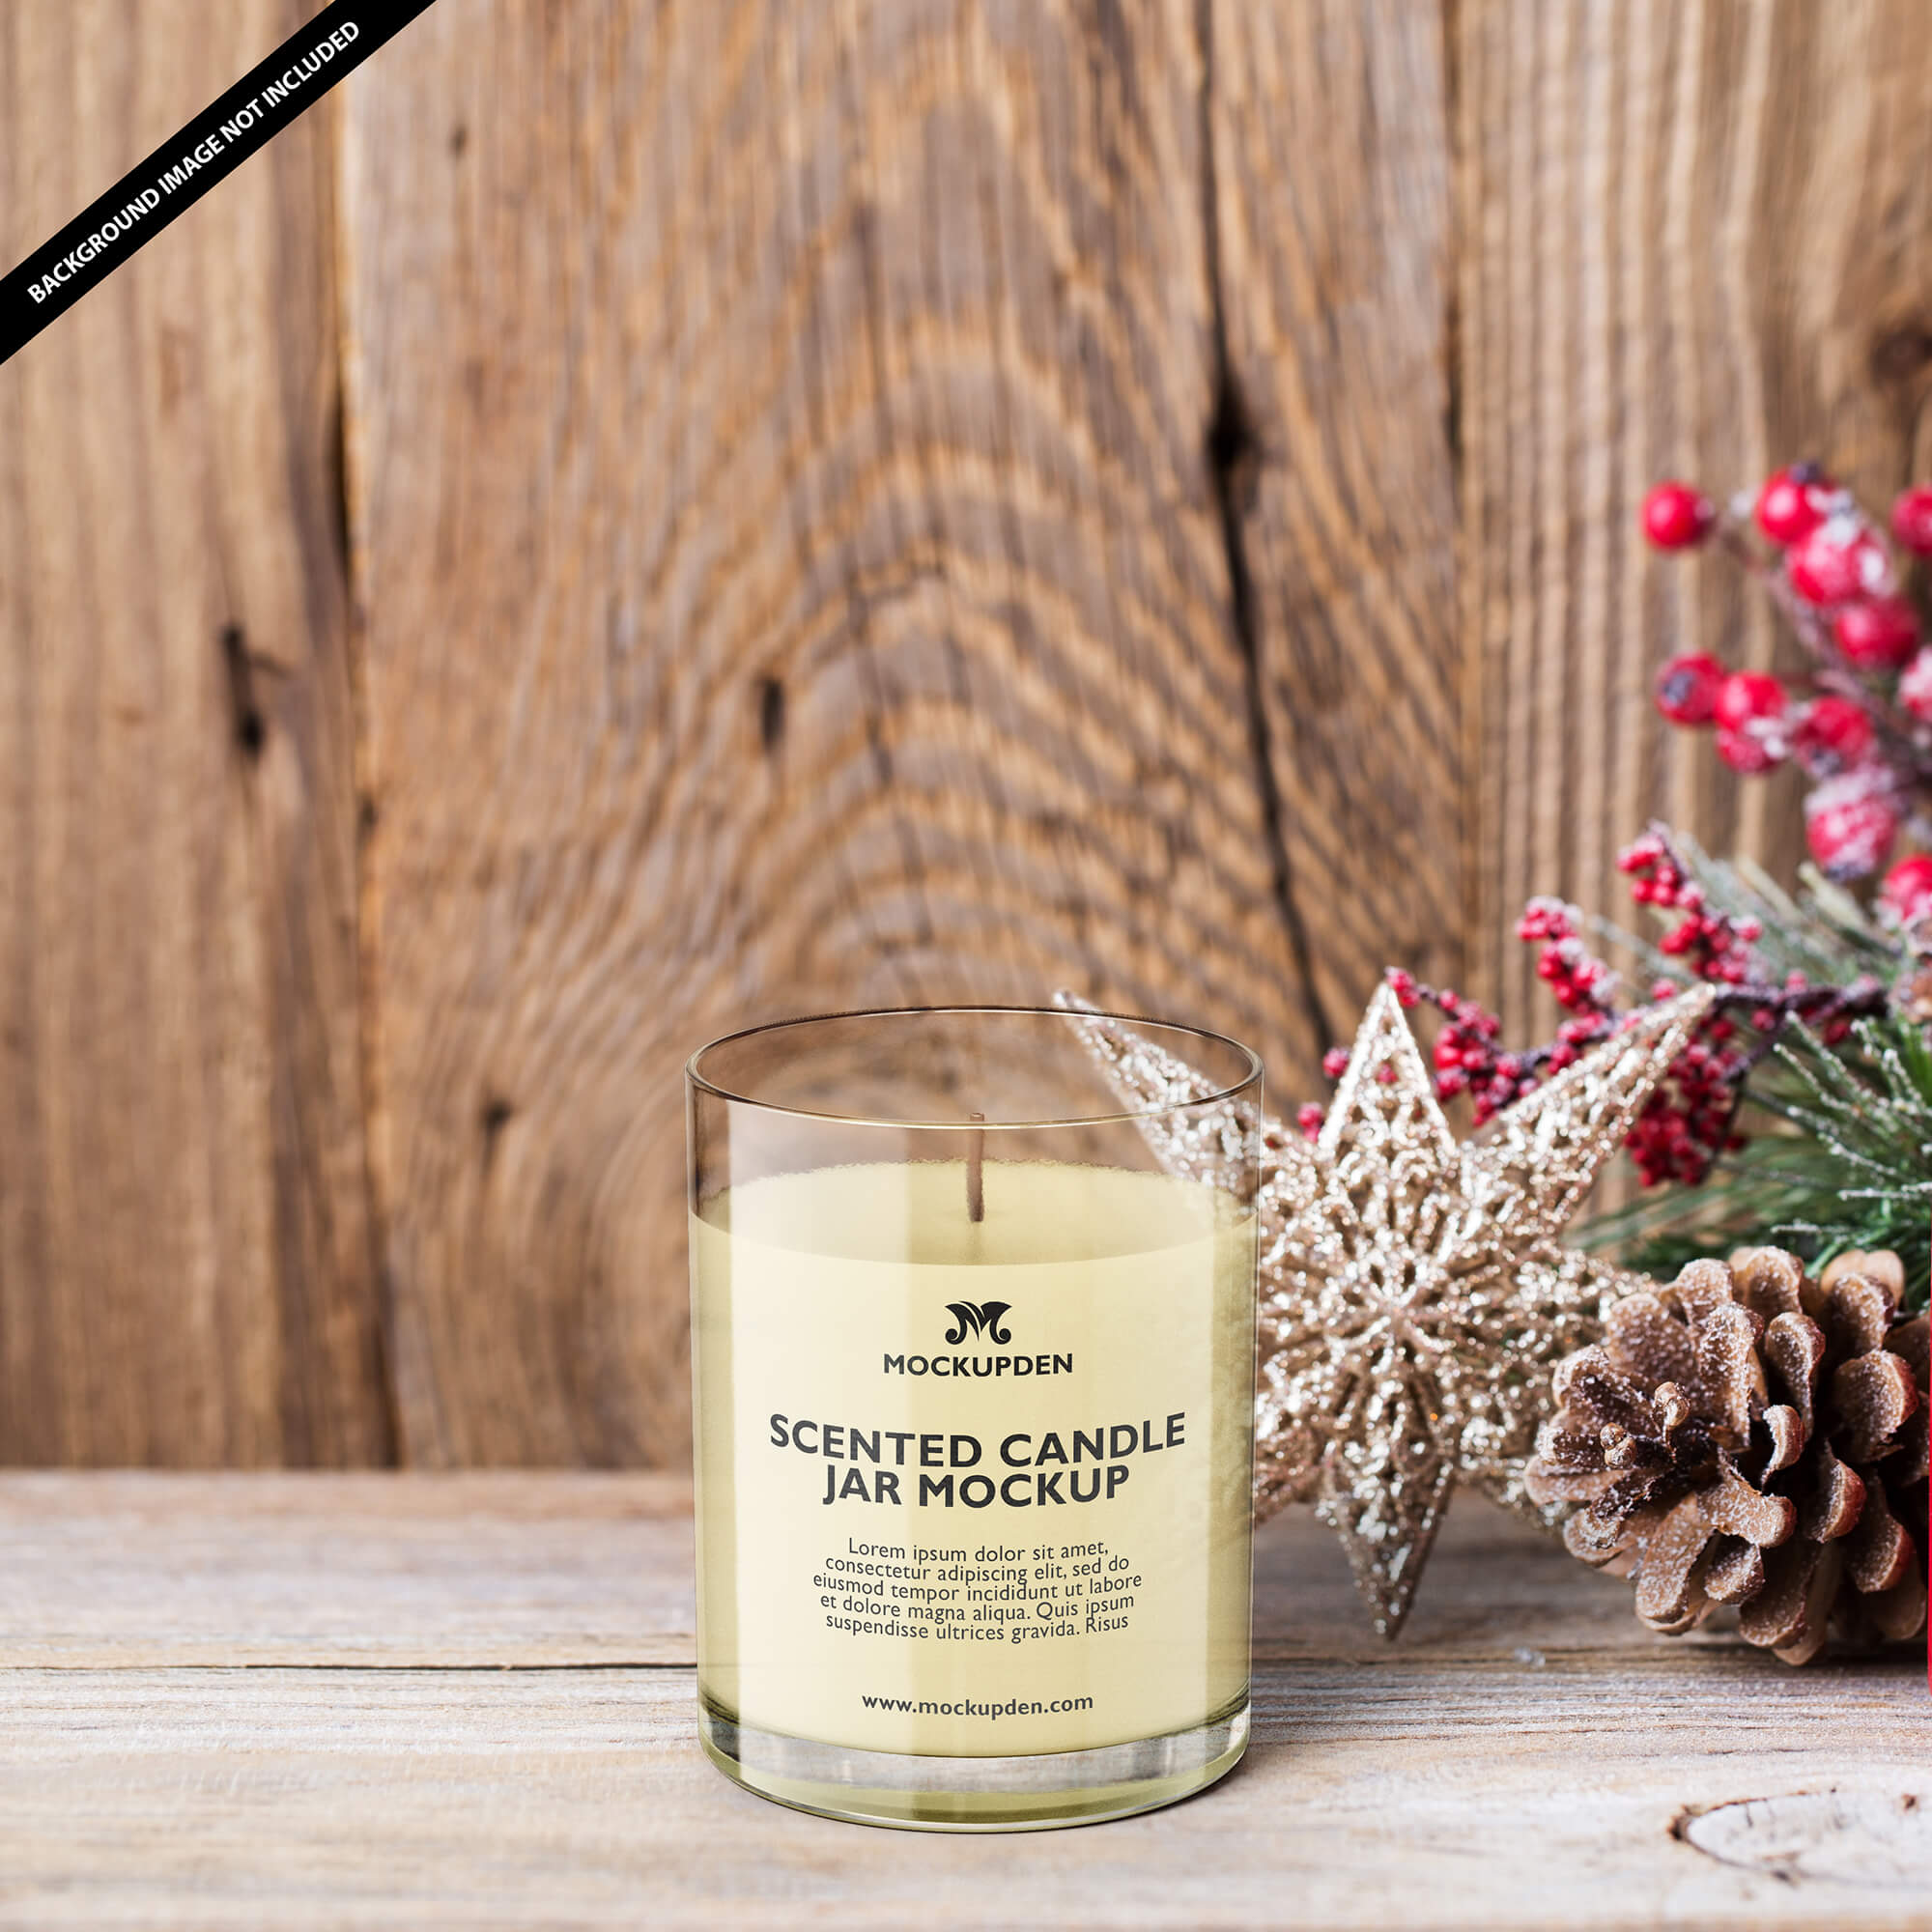 Free Scented Candle Jar Mockup PSD Template